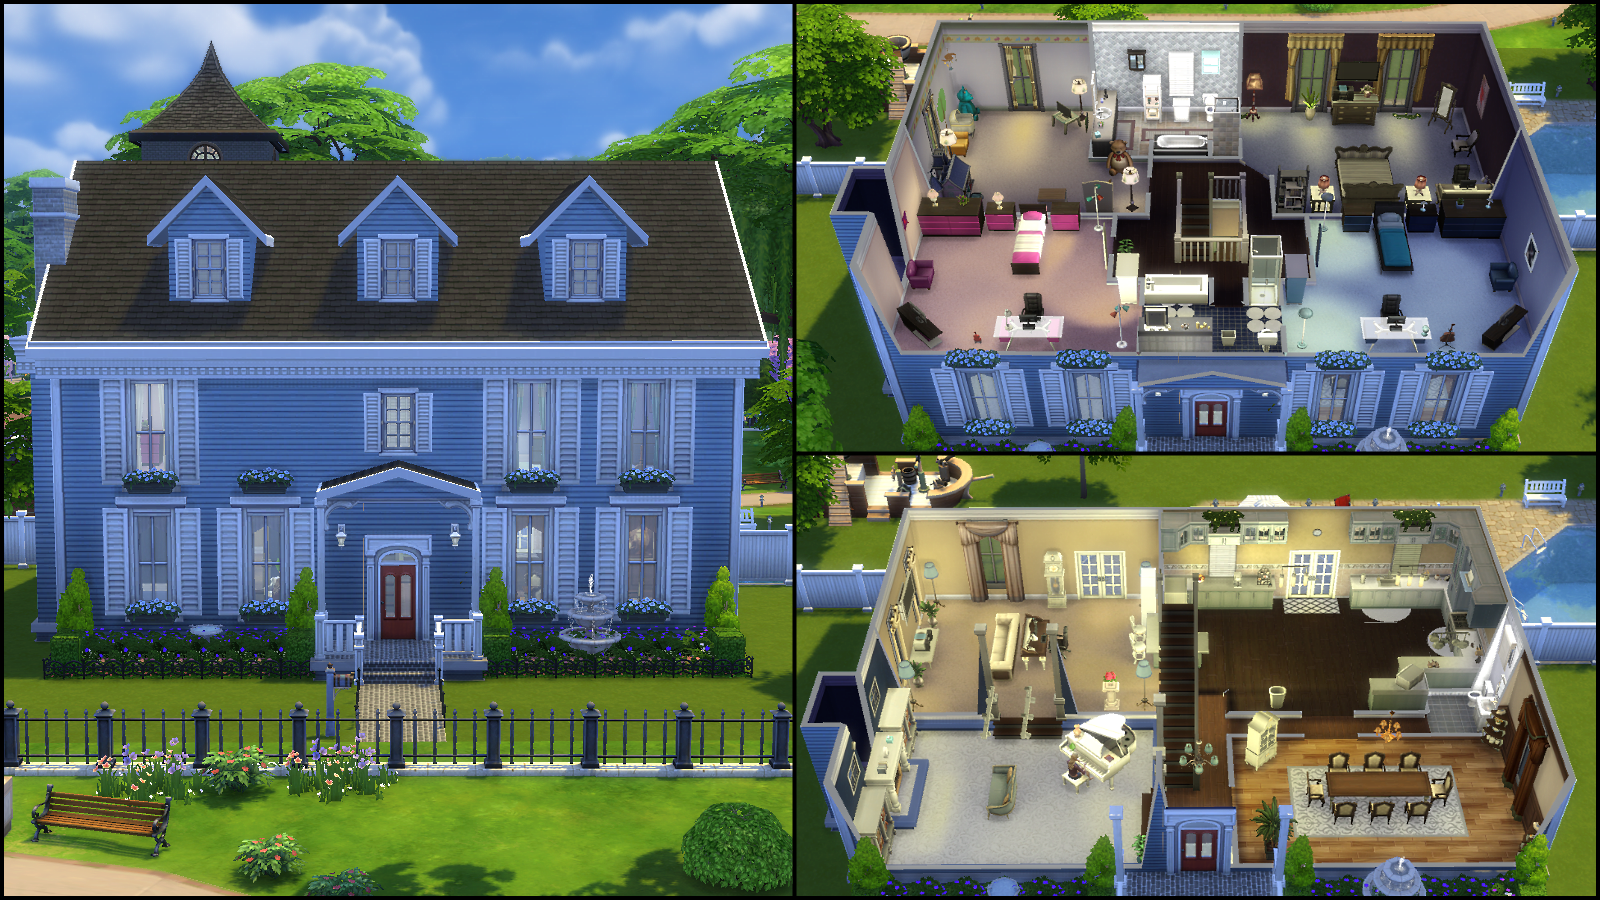 7 new colonial by allibob09 190 197 the traditional design the sims 4 gallery spotlight - Sims 4 Home Design